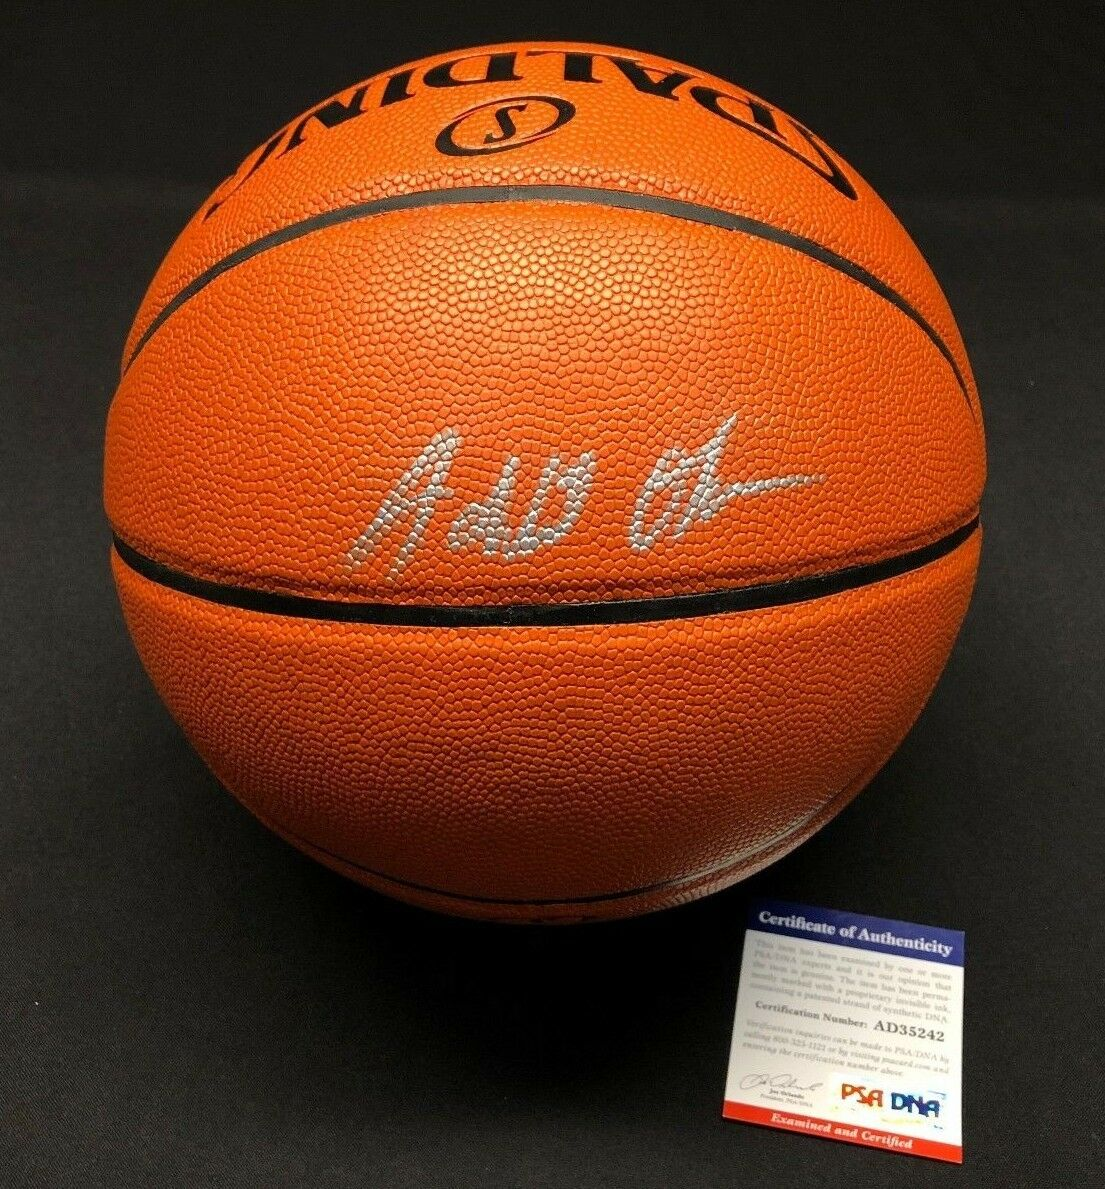 Jahlil Okafor Signed Spalding Game Ball Series Basketball *Nets PSA AD35242